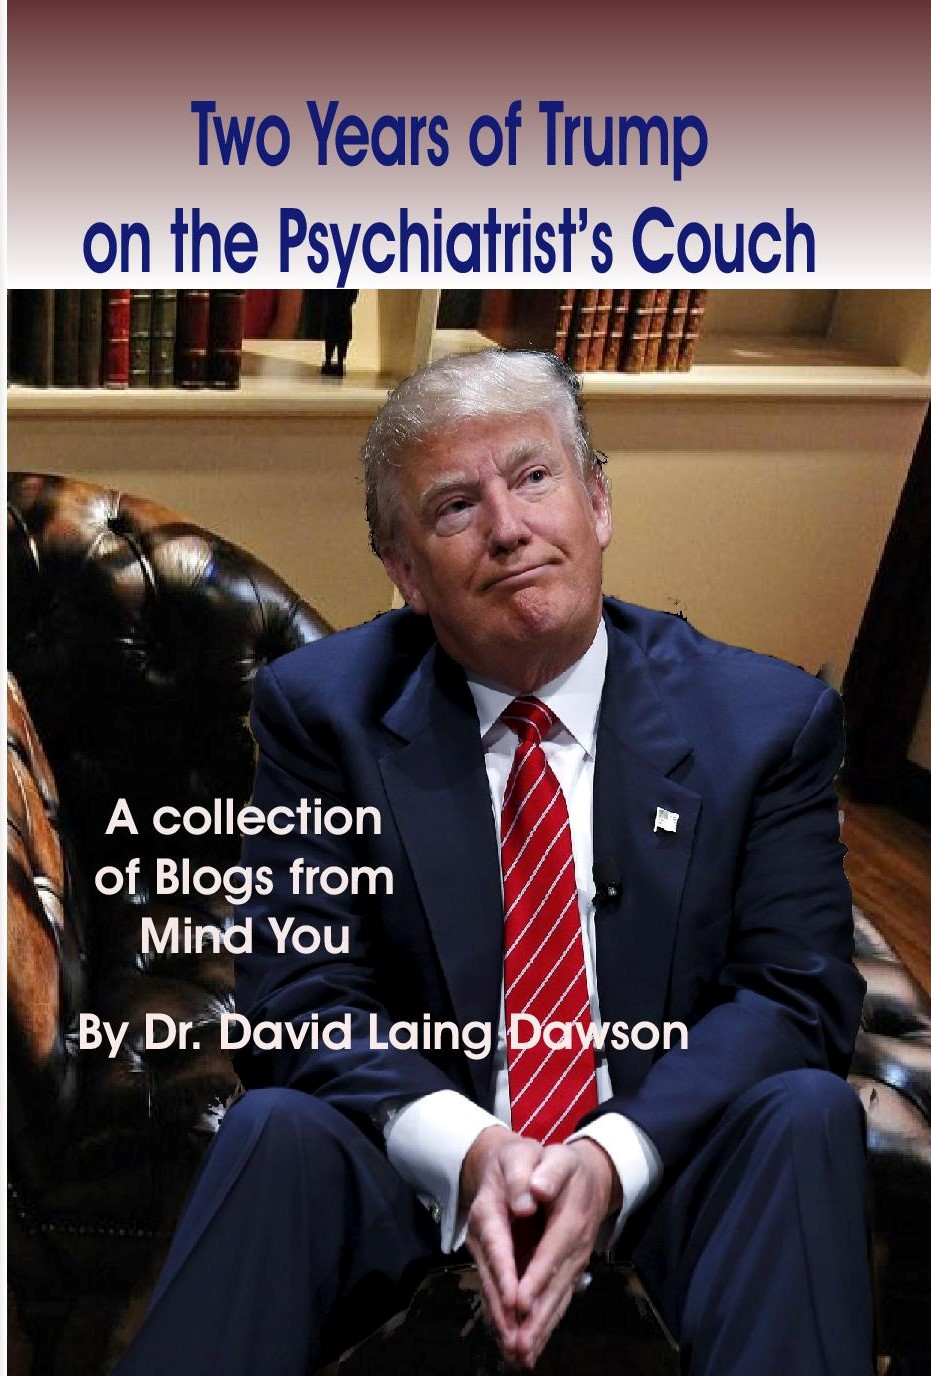 Two Years of Trump on the Psychiatrist's Couch